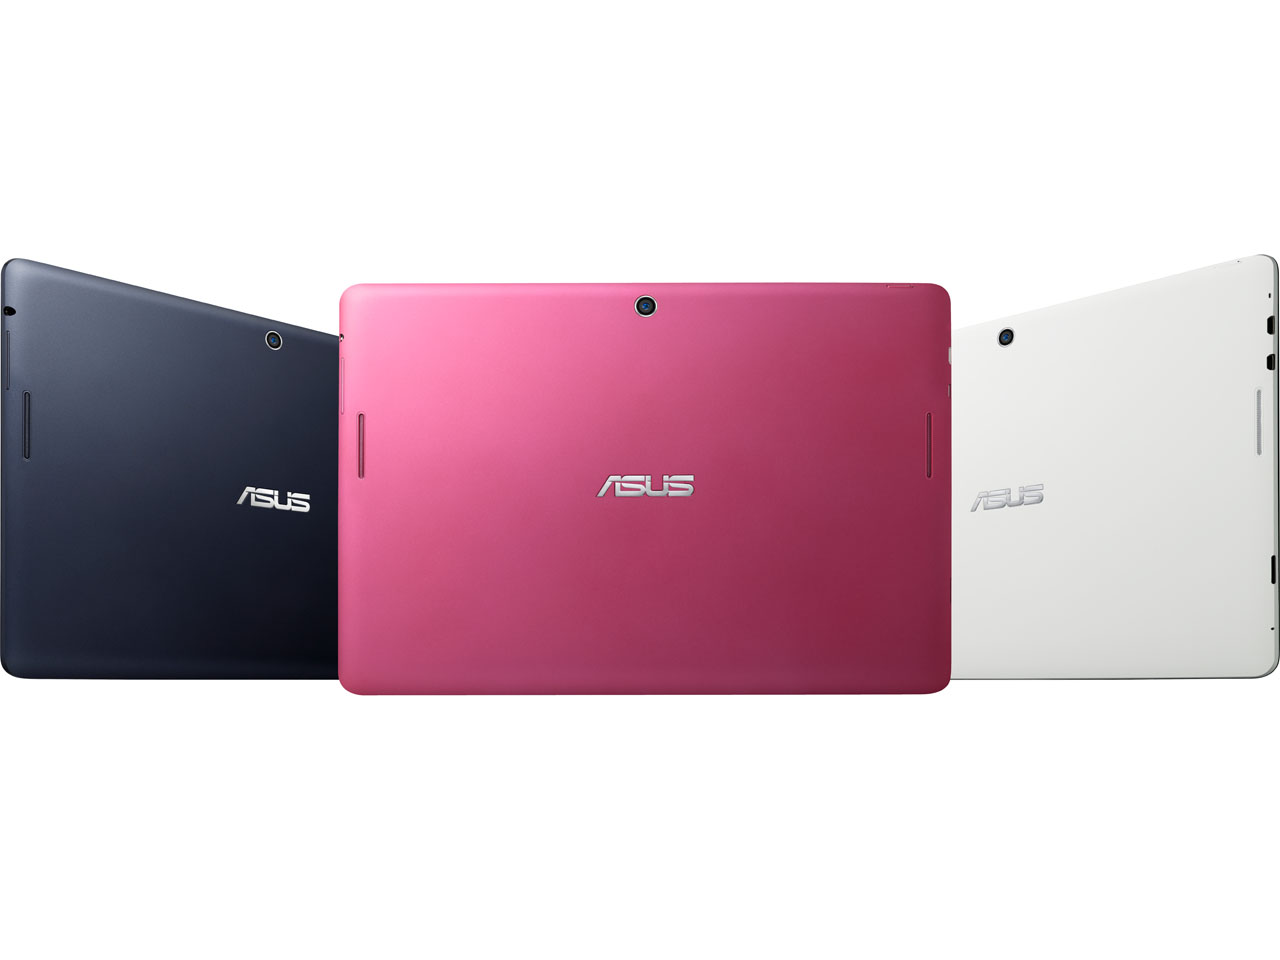 asus-memo-pad-smart-10-back-blue-pink-white